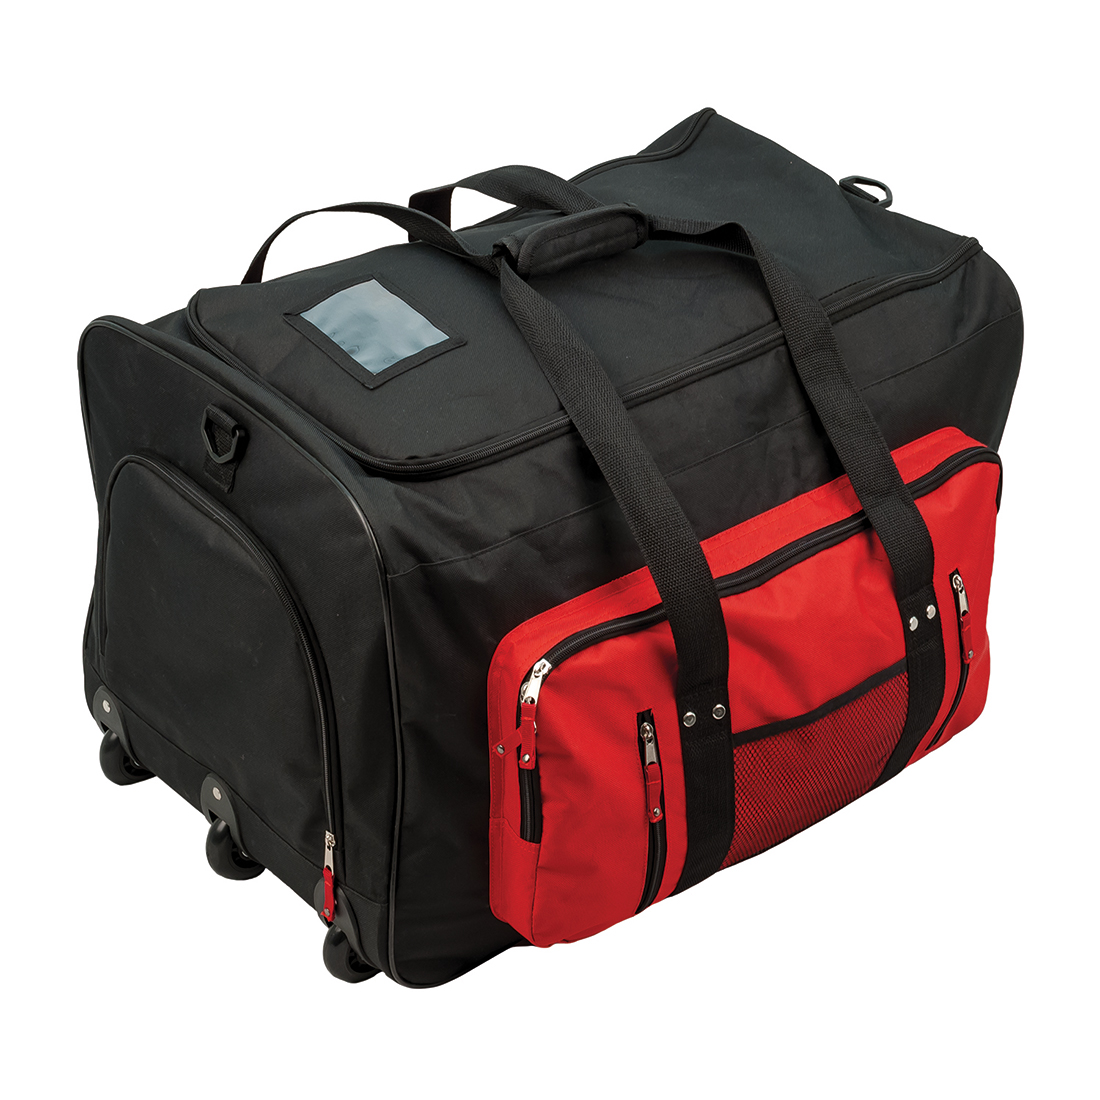 Portwest The Multi-Pocket Trolley Bag - B907